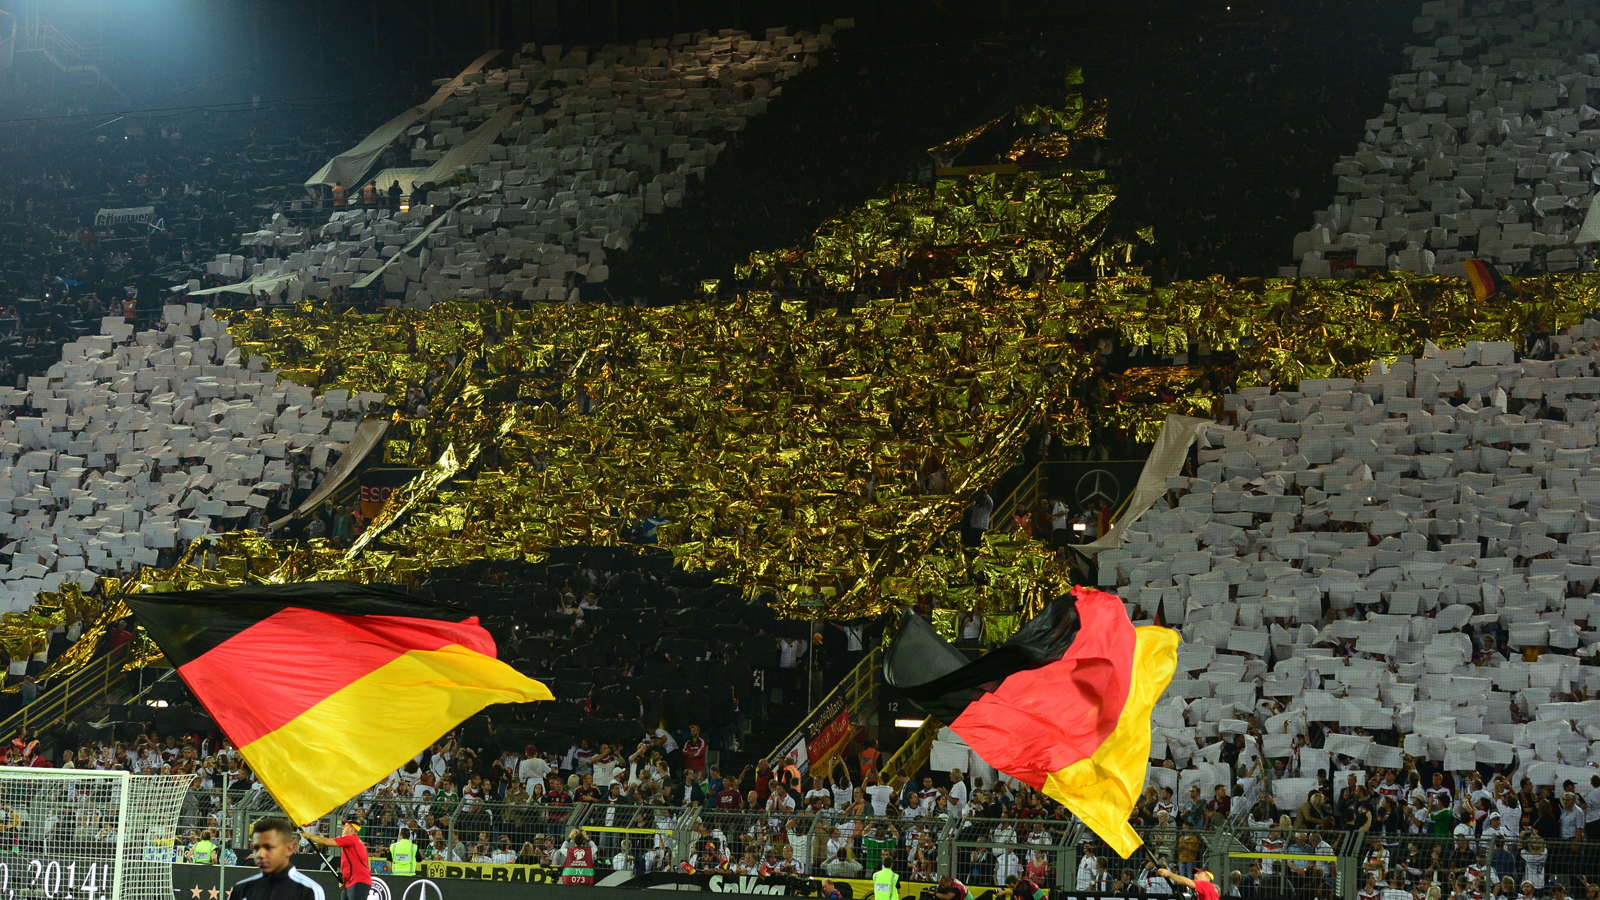 German fans boast the newest star earned by the national team, symbolizing its 2014 World Cup triumph, at a Euro 2016 qualifying match in Dortmund.